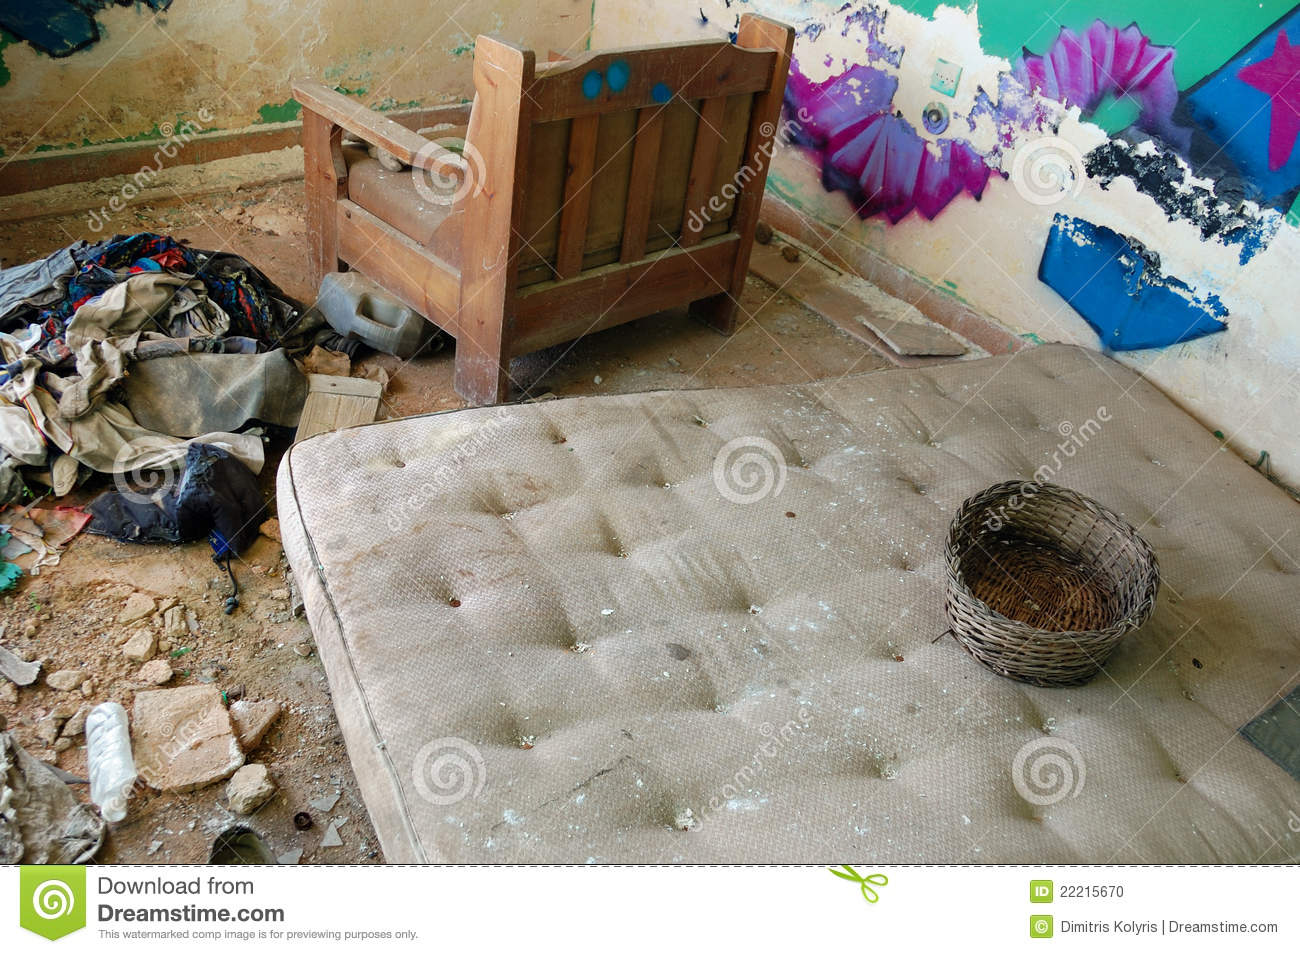 Dirty Mattress In Abandoned House Stock Image